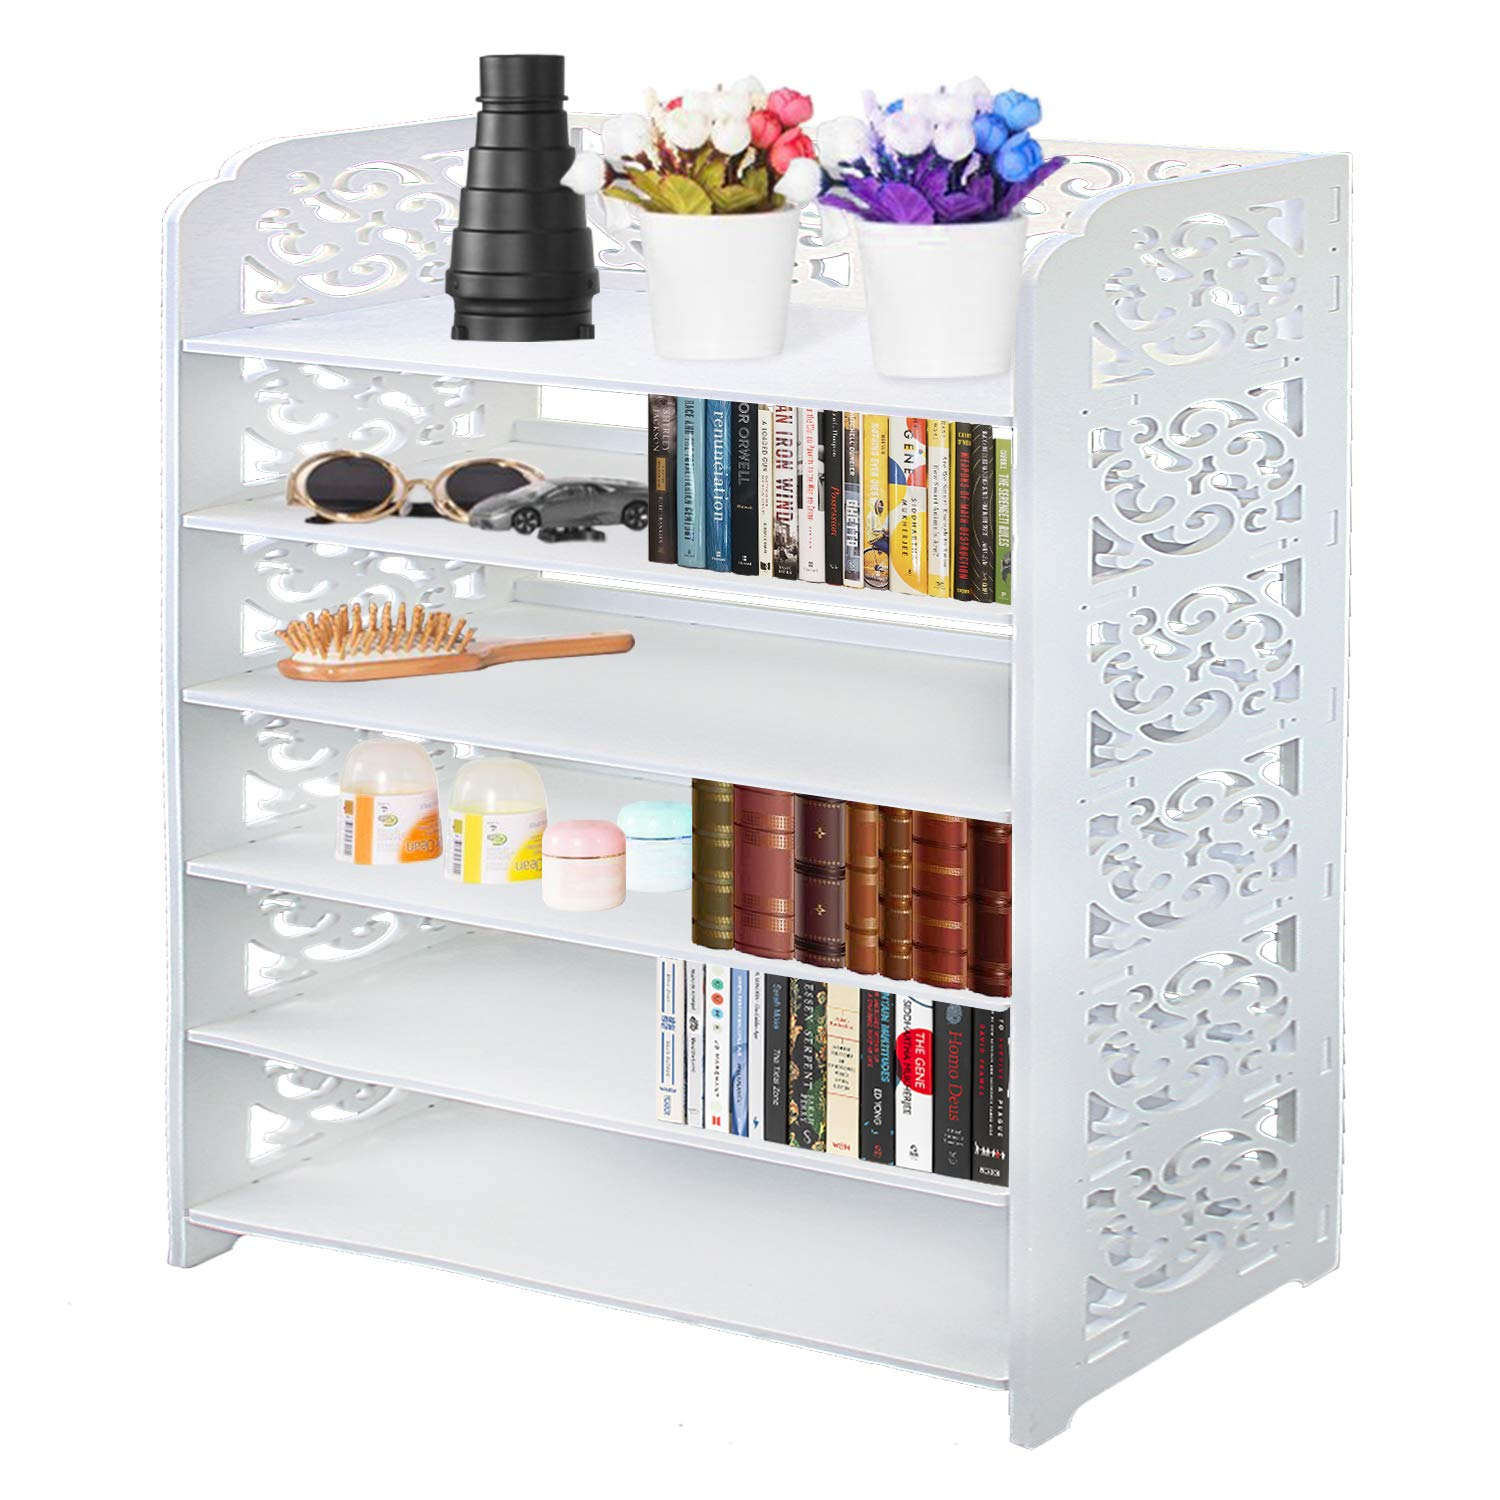 DL furniture - WPC Multipurpose Shoe Rack & Book Shelf L23.5'' x W9.5'' x H38'' 6 Tier Tall & Wide, Environmental Friendly Material | White… by DL furniture (Image #1)